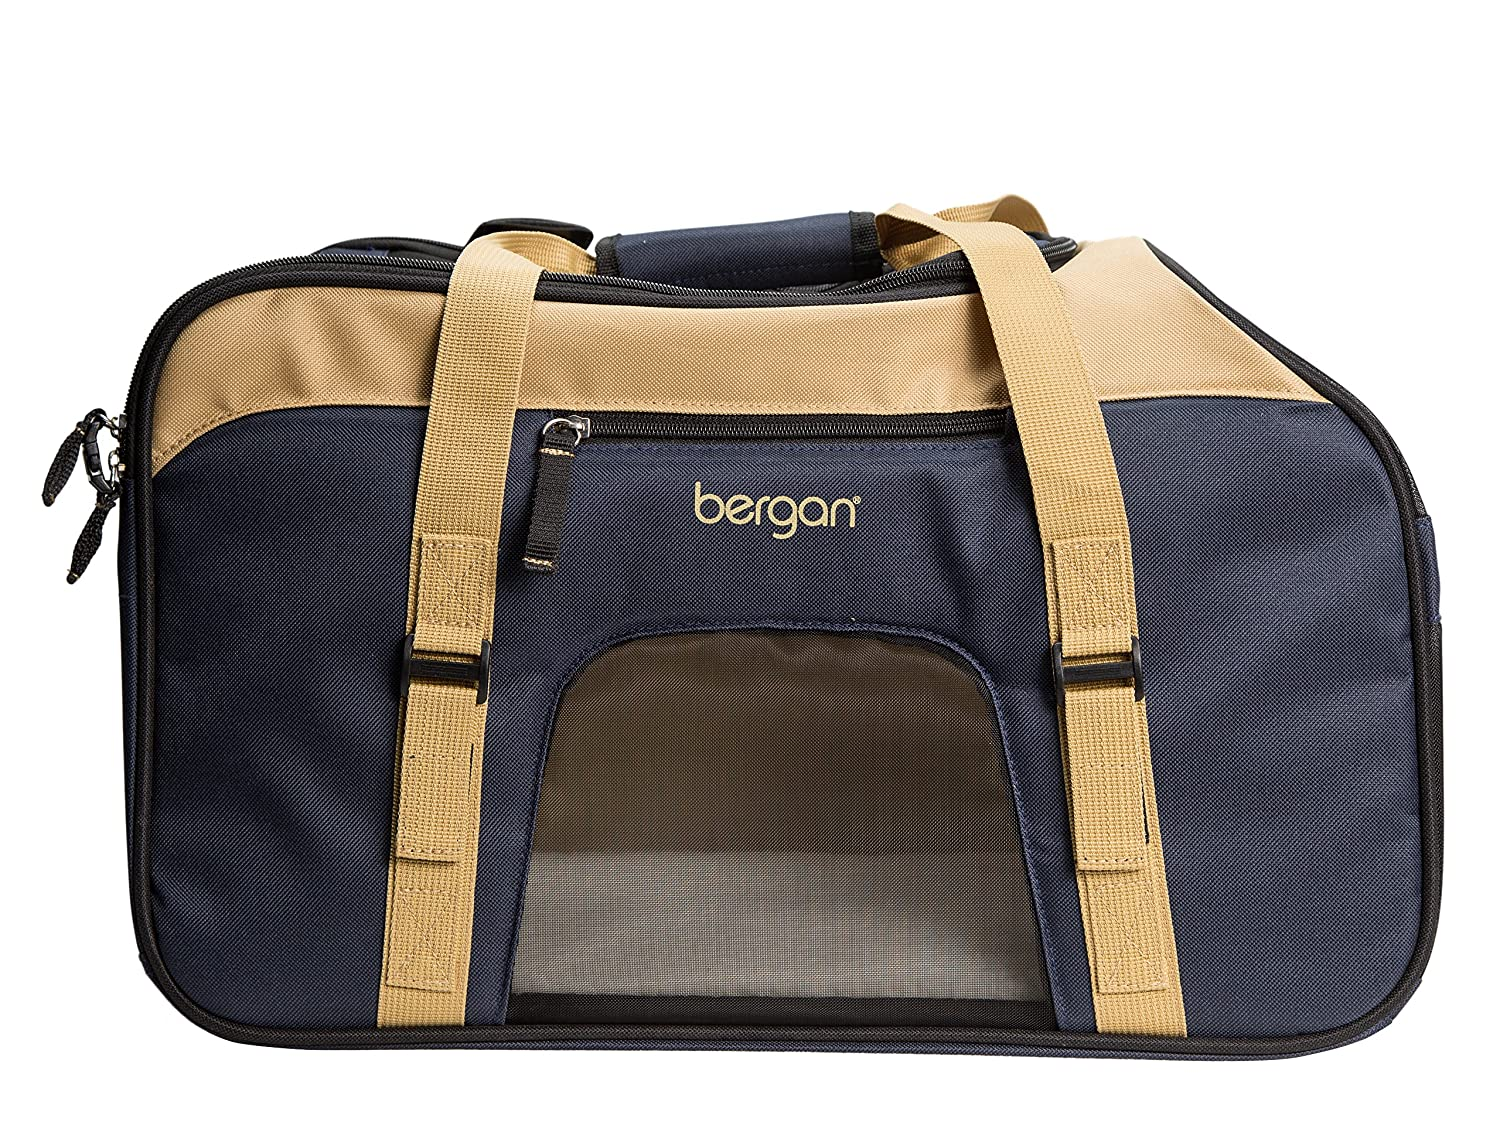 Bergan Comfort Carrier, Large Top Loading, Navy and Sand